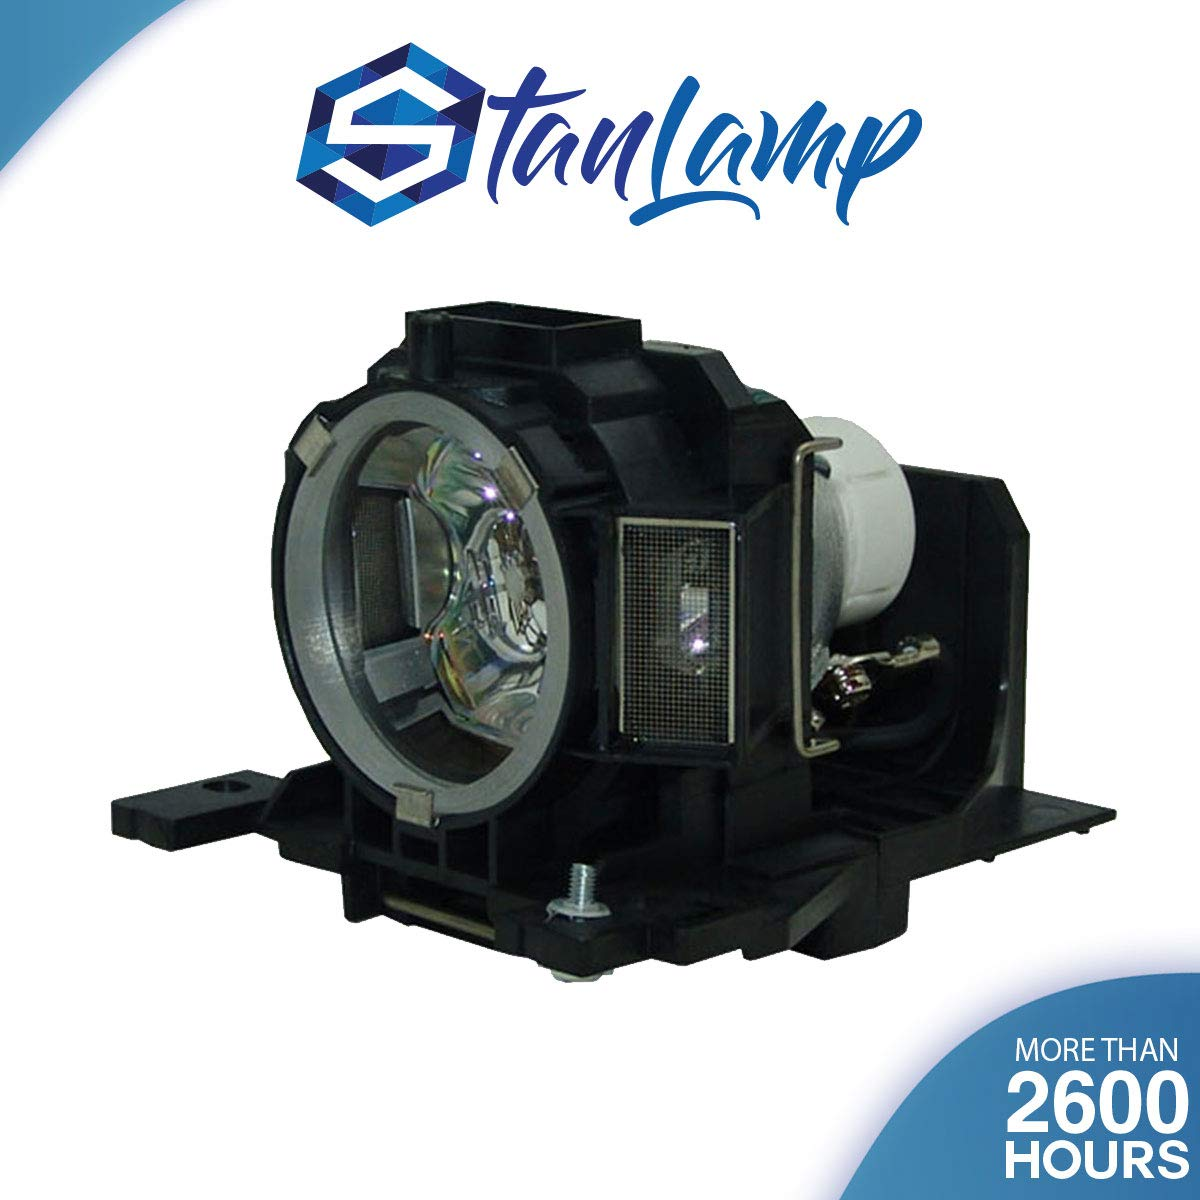 StanLamp Projector Replacement Lamp with Housing for Hitachi DT00891 CP-A100 ED-A100 ED-A110 CP-A101 CP-A100 CP-A100J CP-A101i ED-A100 ED-A100J ED-A110 ED-A110J HCP-A8